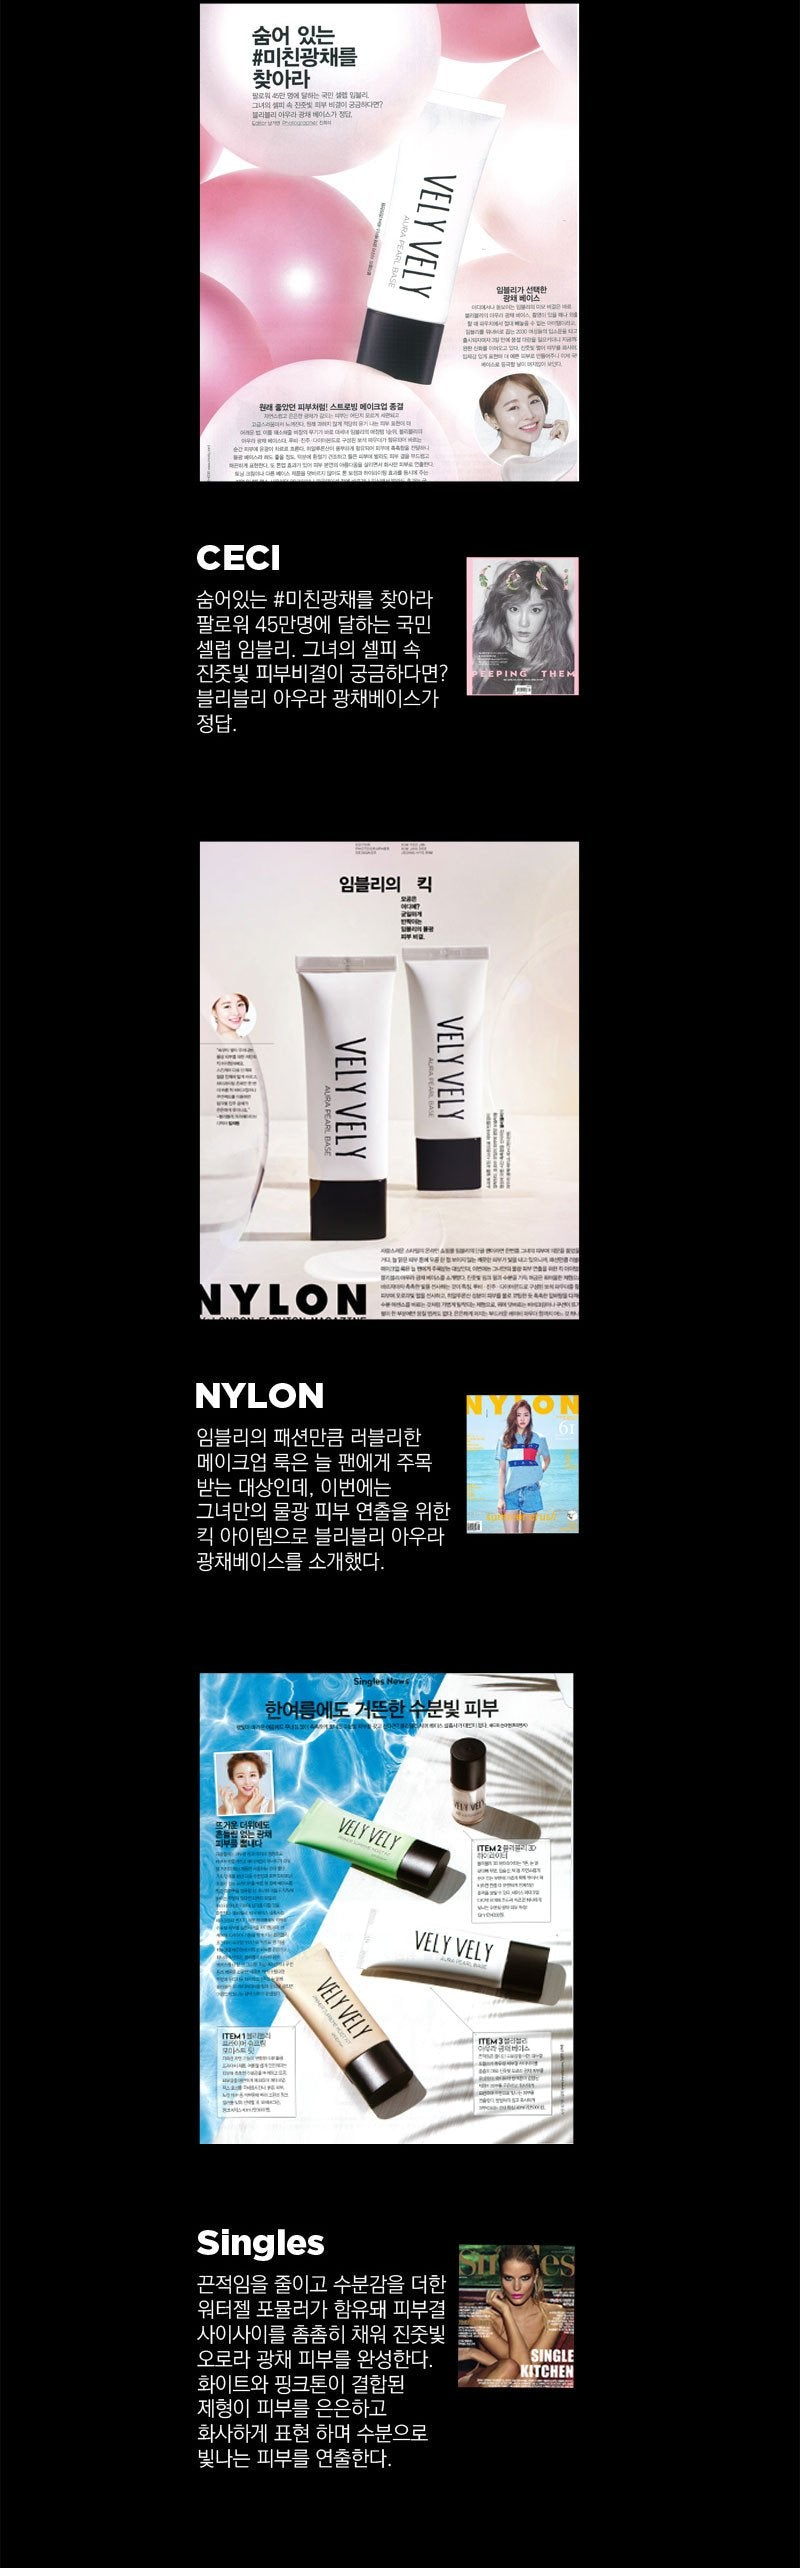 Vely Vely Aura Pearl Base featured on nylon ceci magazine